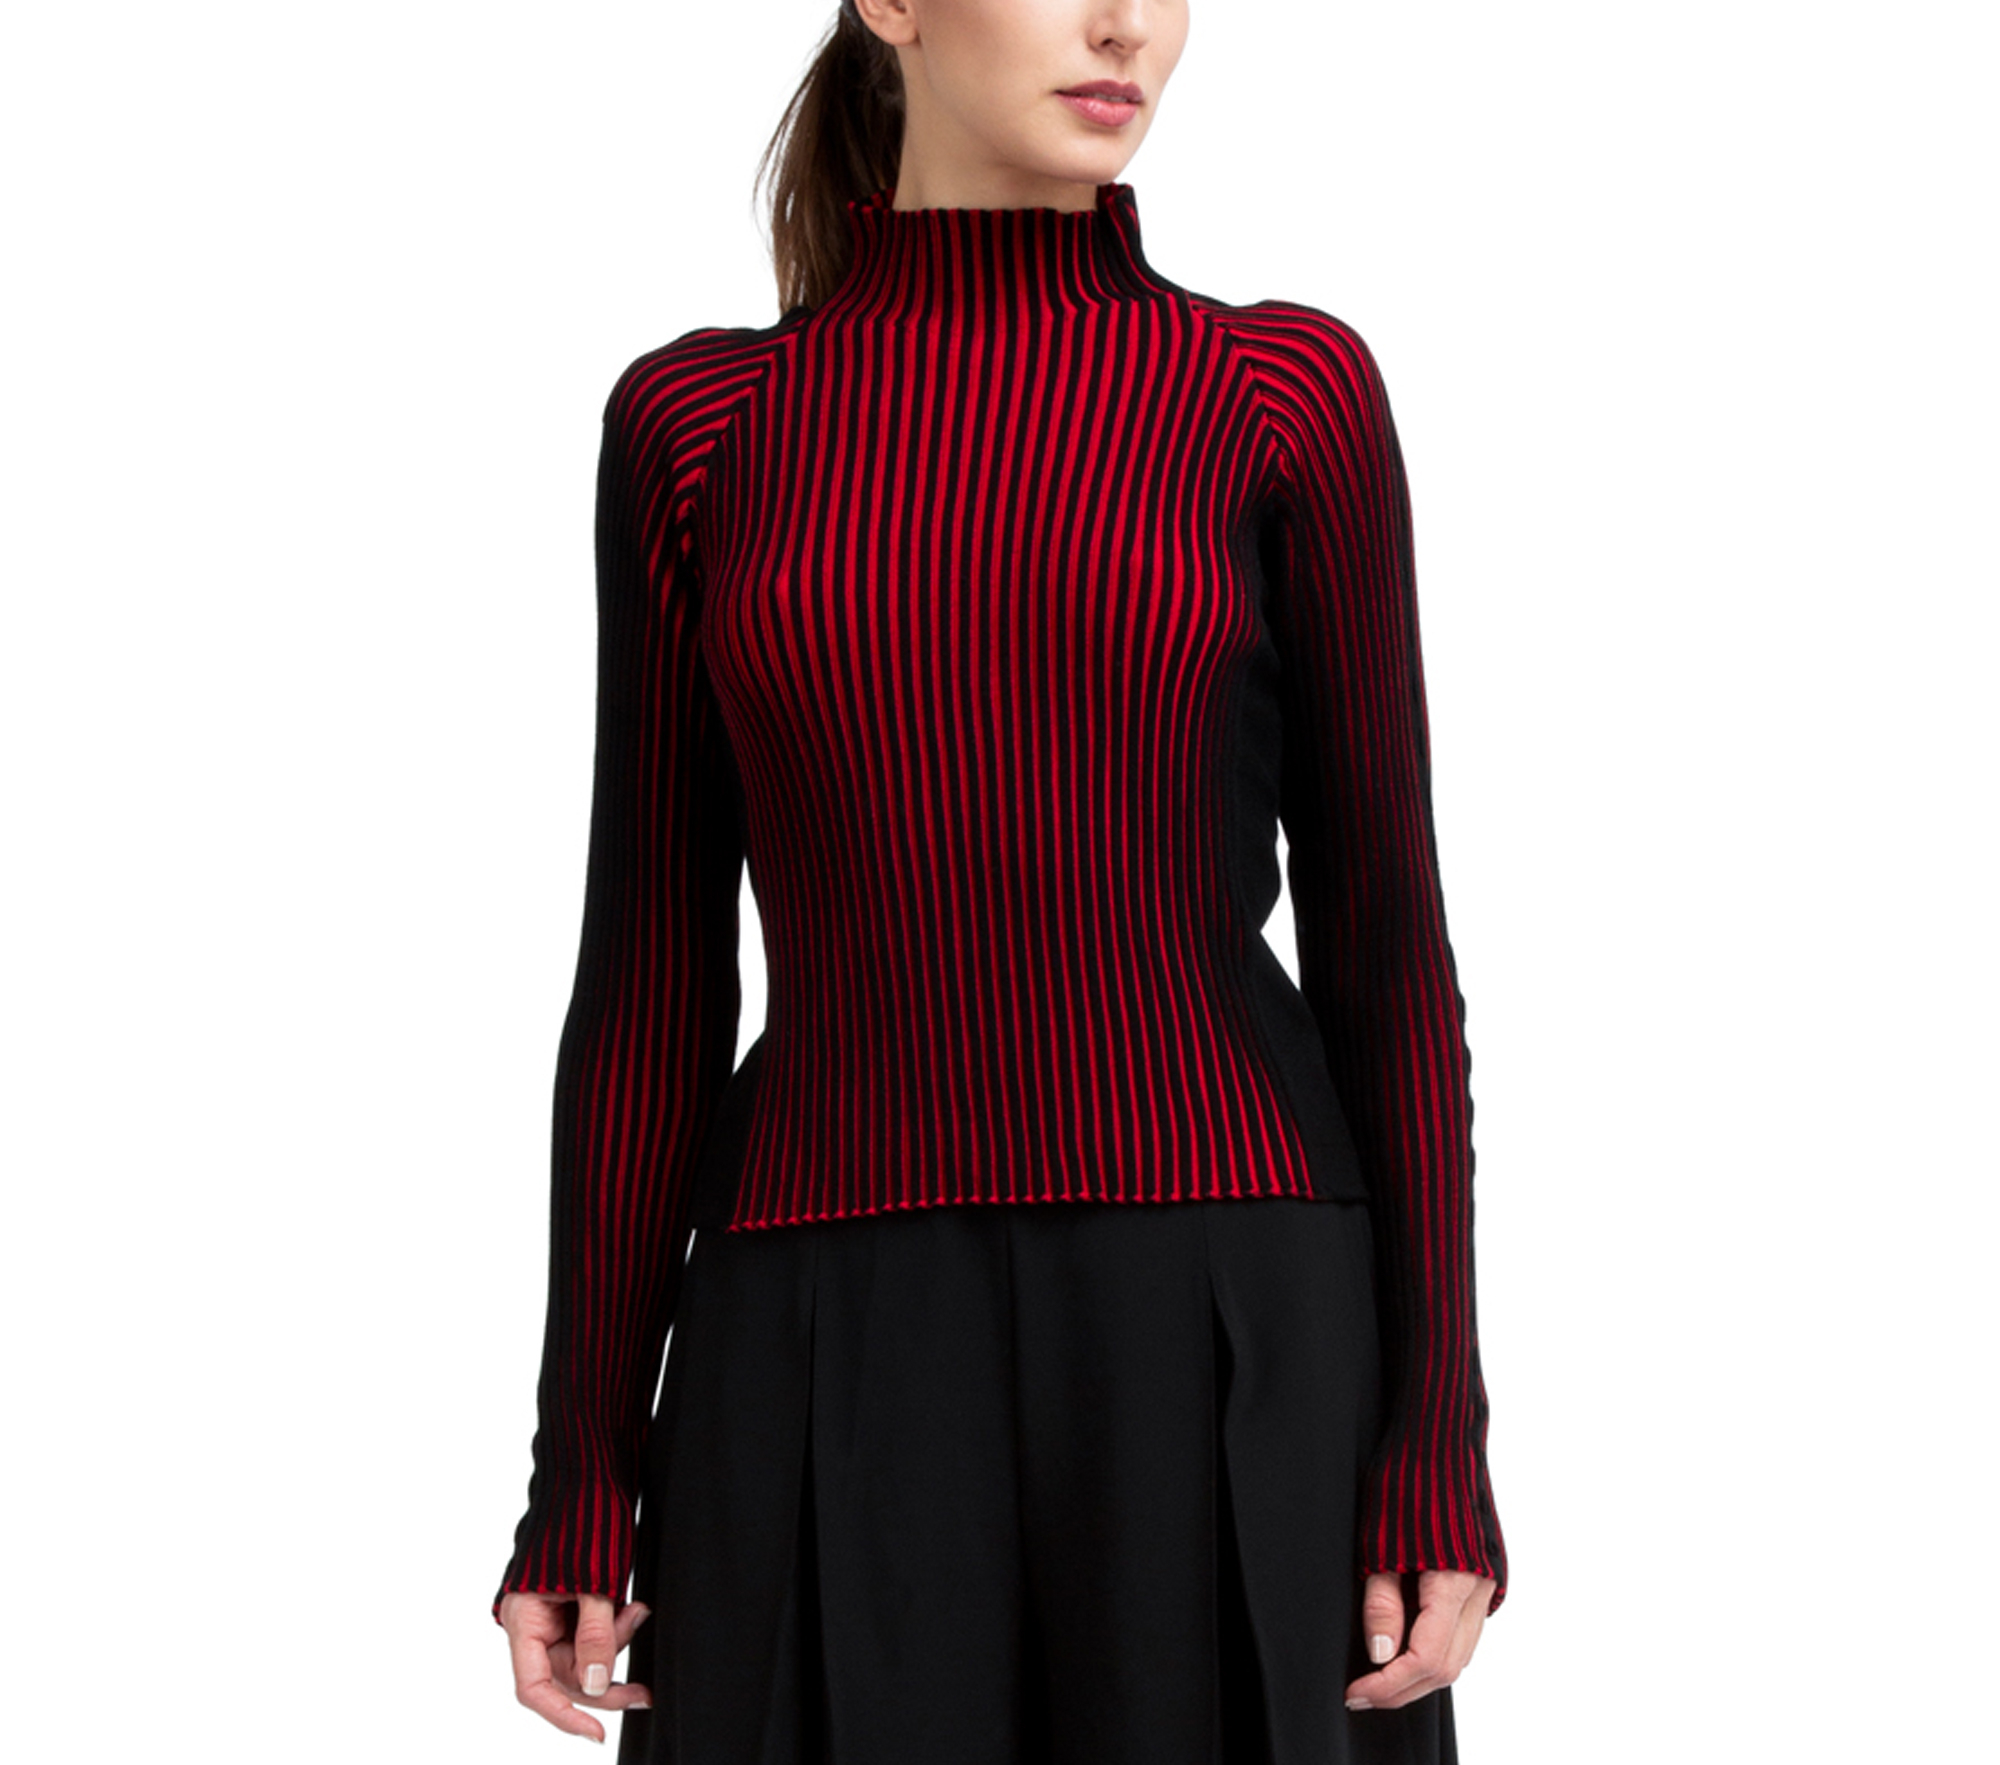 Bicolor rib knit sweater